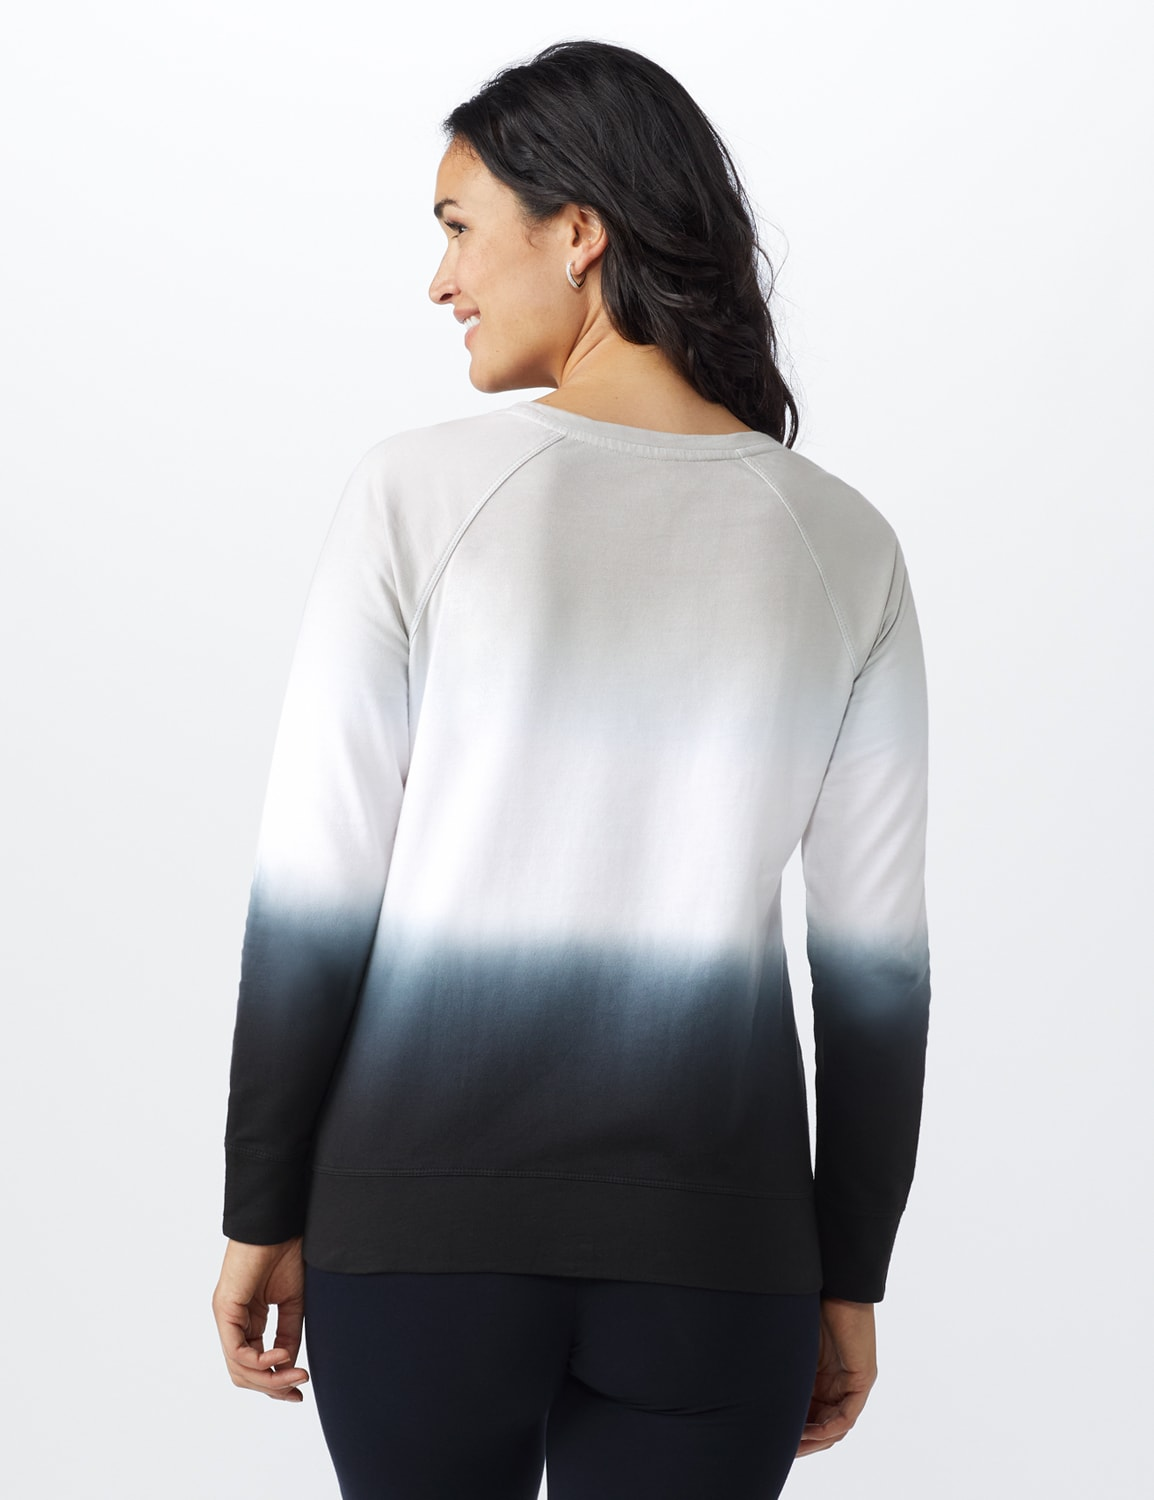 Dip Dye Scoop Neck French Terry Knit Top - Grey/Black - Back